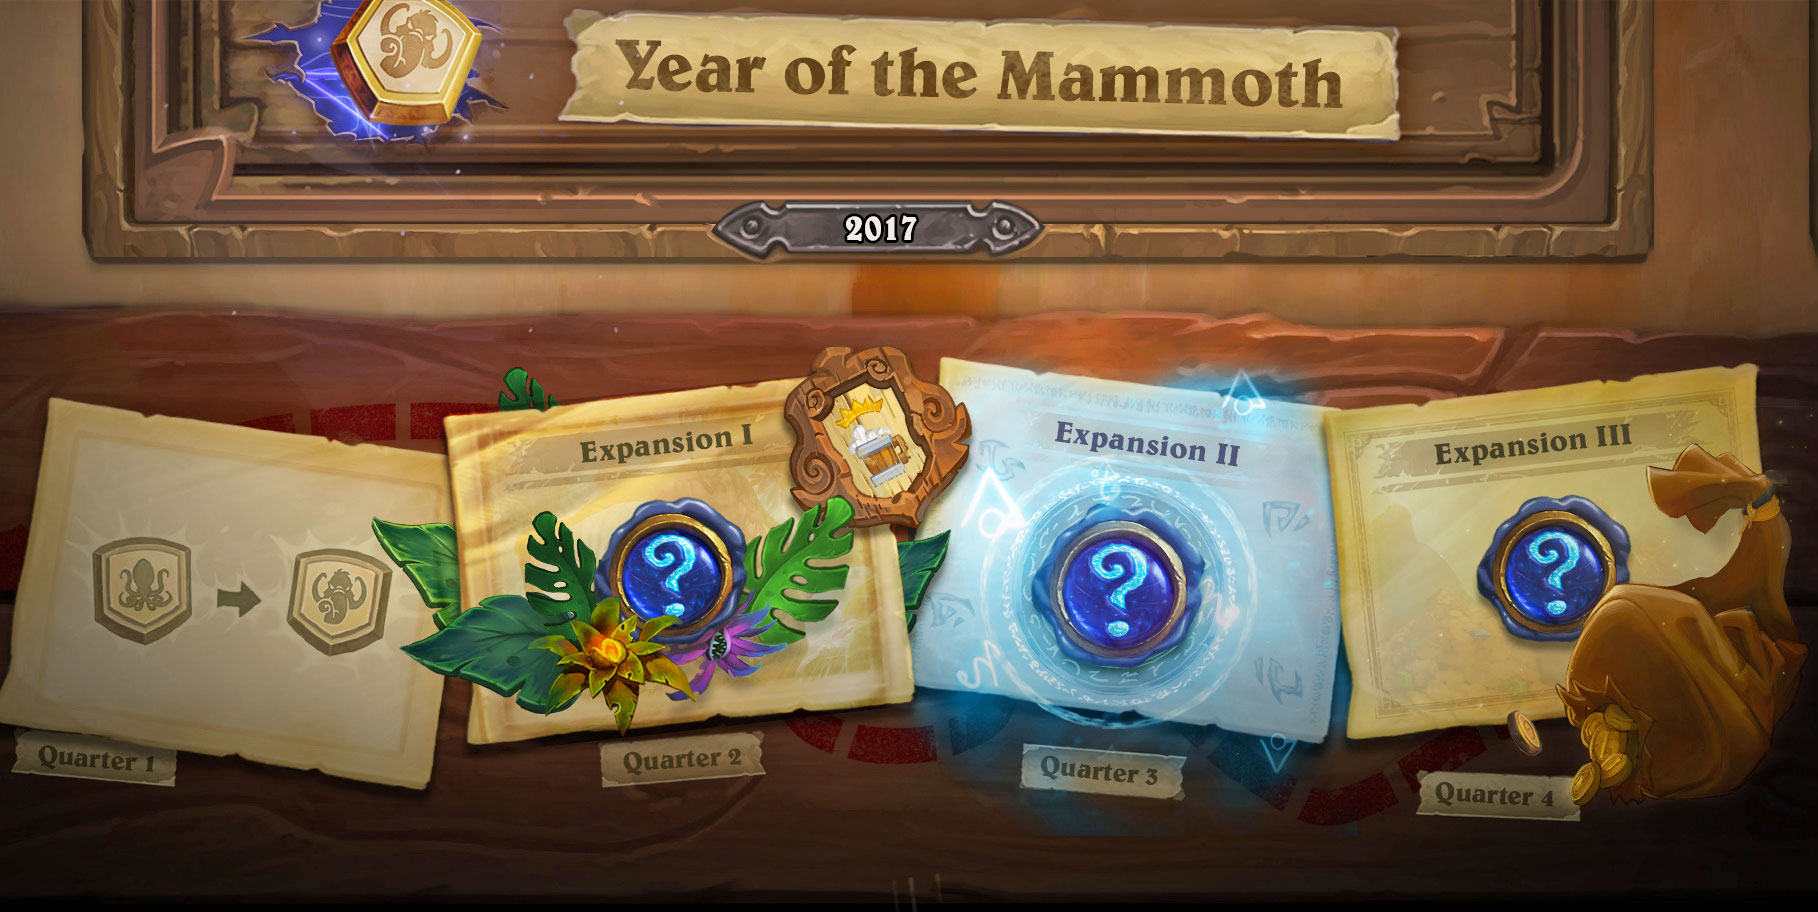 hearthstone-year-of-the-mammoth-2017-expansion-timeline.jpg